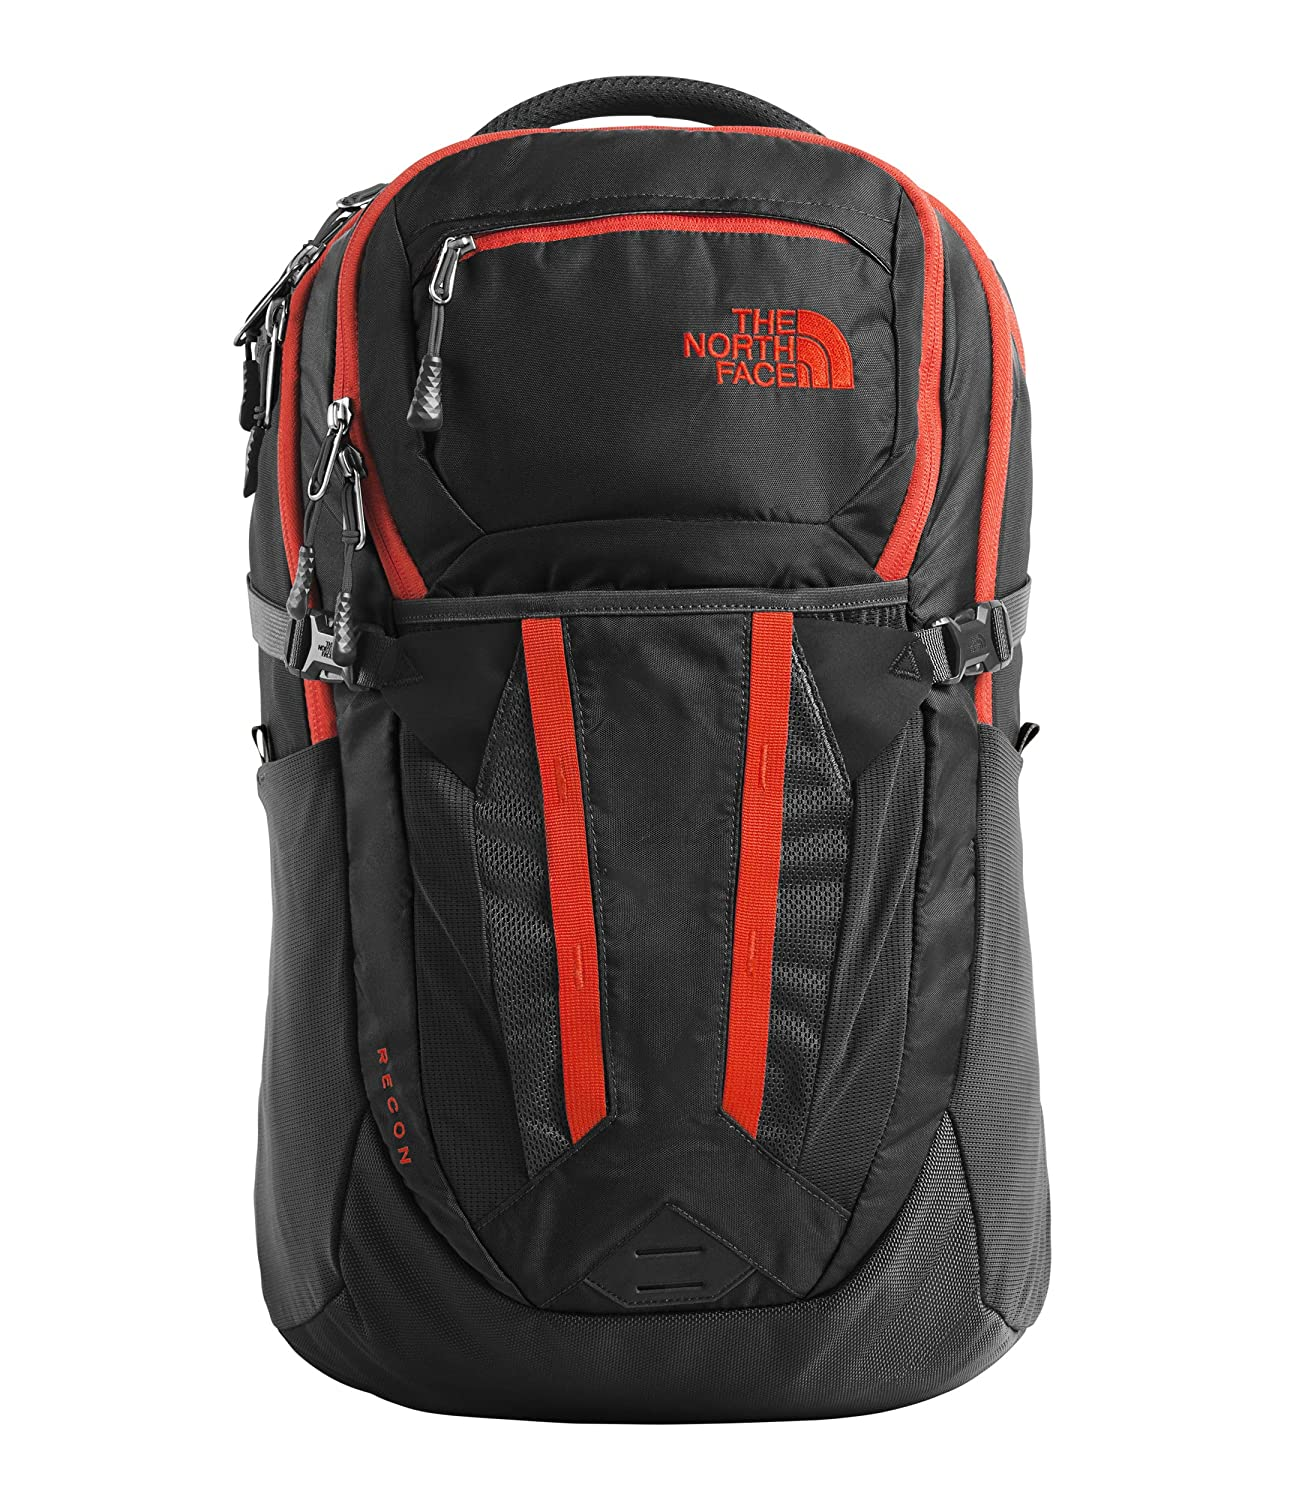 8a8c87dc7e8e Amazon.com | The North Face Recon, Asphalt Grey/Fiery Red, OS | Backpacks